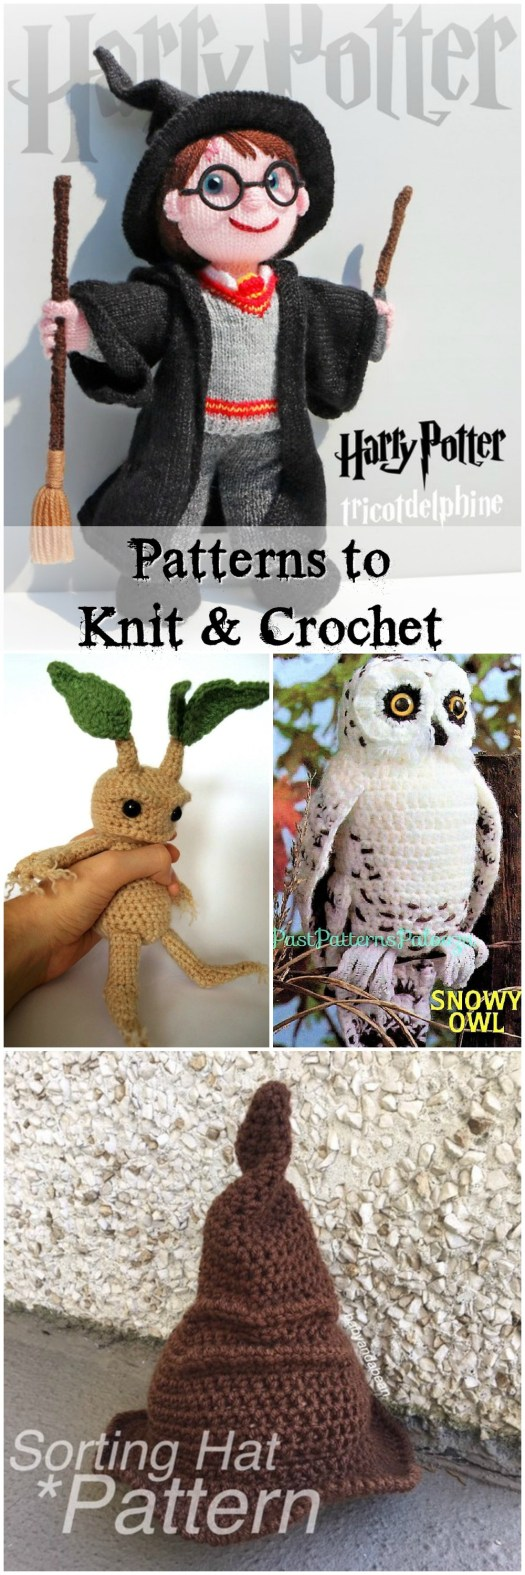 Four adorable knit and crochet patterns inspired by Harry Potter! I love the Mandrake pattern! So cute!